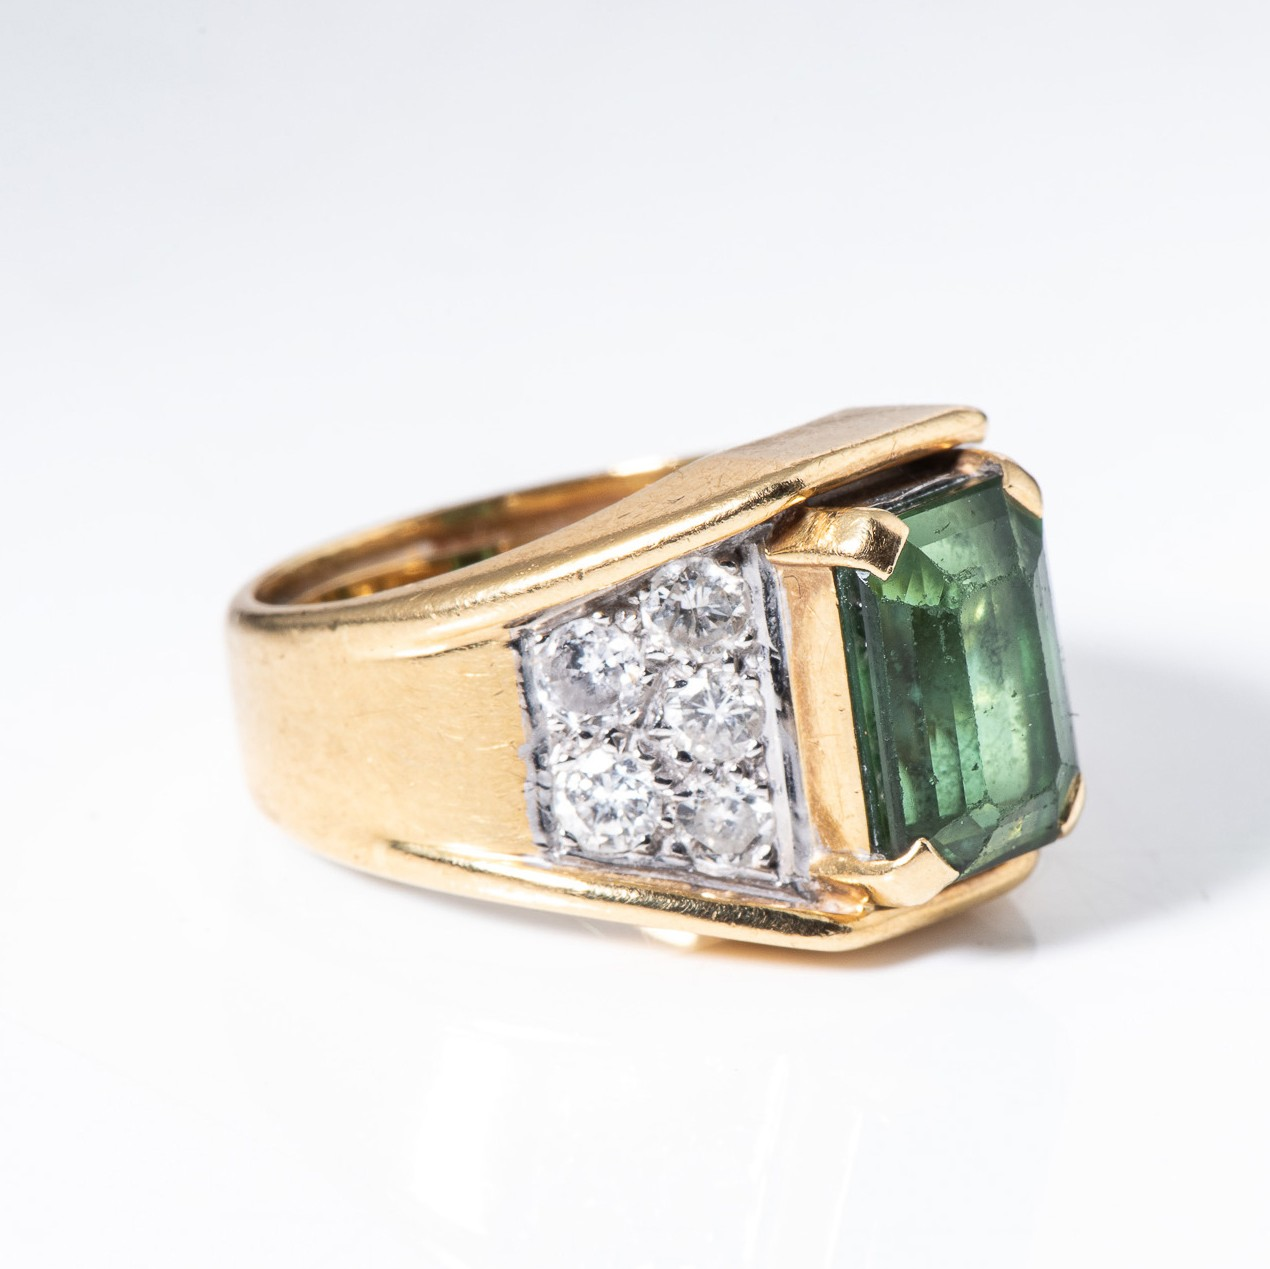 A GREEN TOURMALINE AND DIAMOND RING - Image 2 of 4